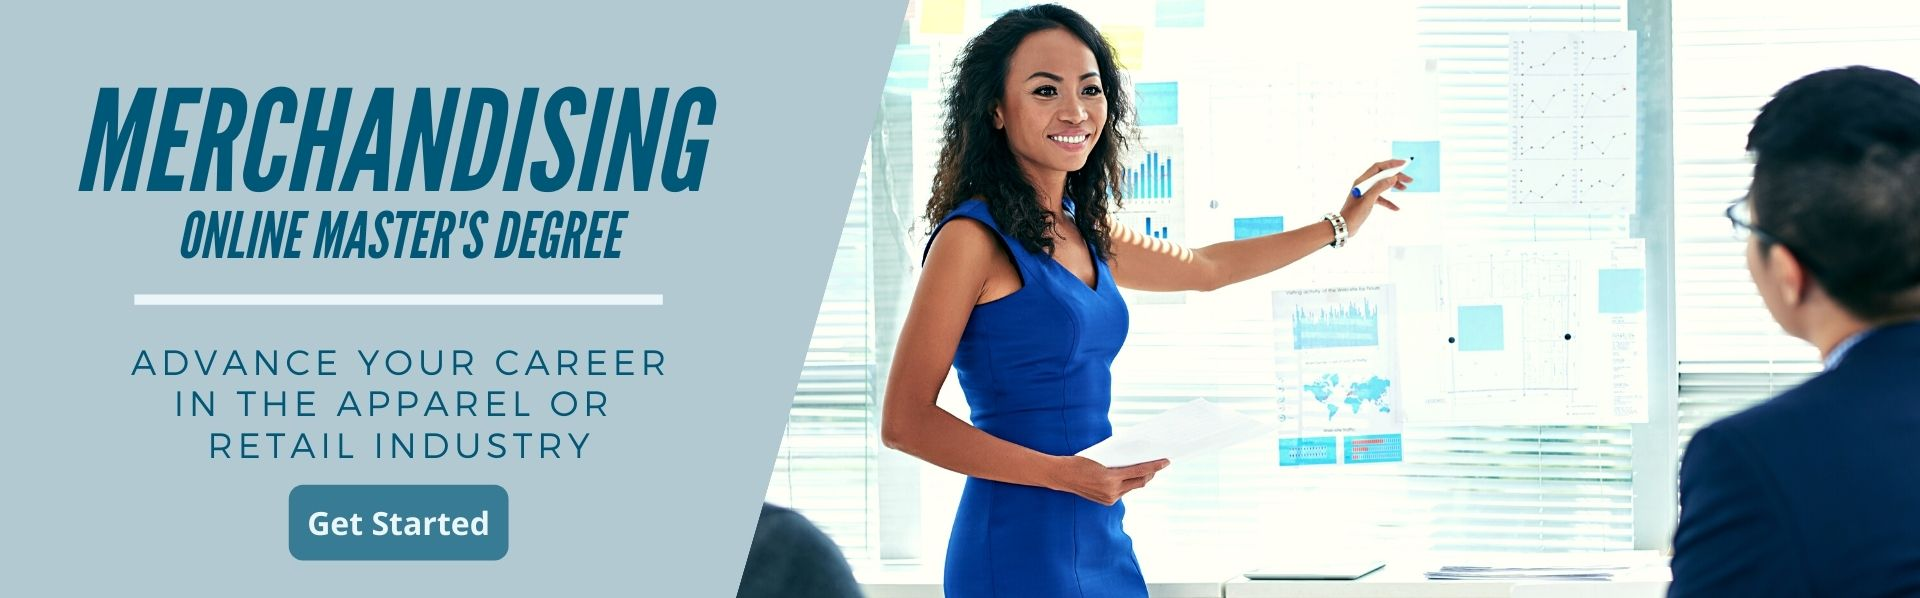 A professional woman presents in a corporate setting. An online merchandising master's degree or graduate certificate will advance your career in the apparel or retail industry.